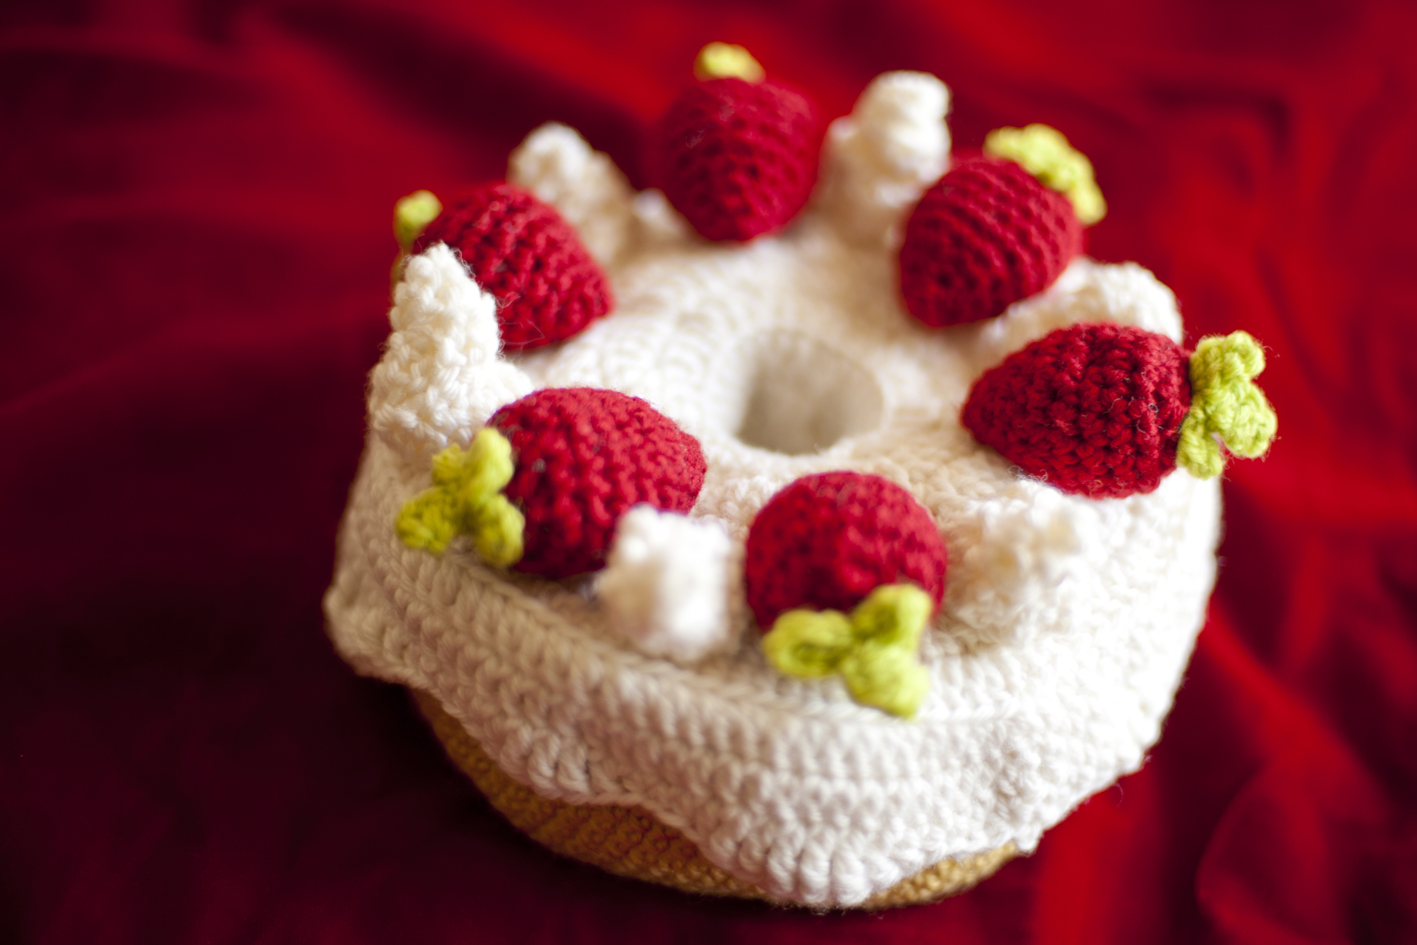 Angel Food Cake Amigurumi Openable Container Plush Toy